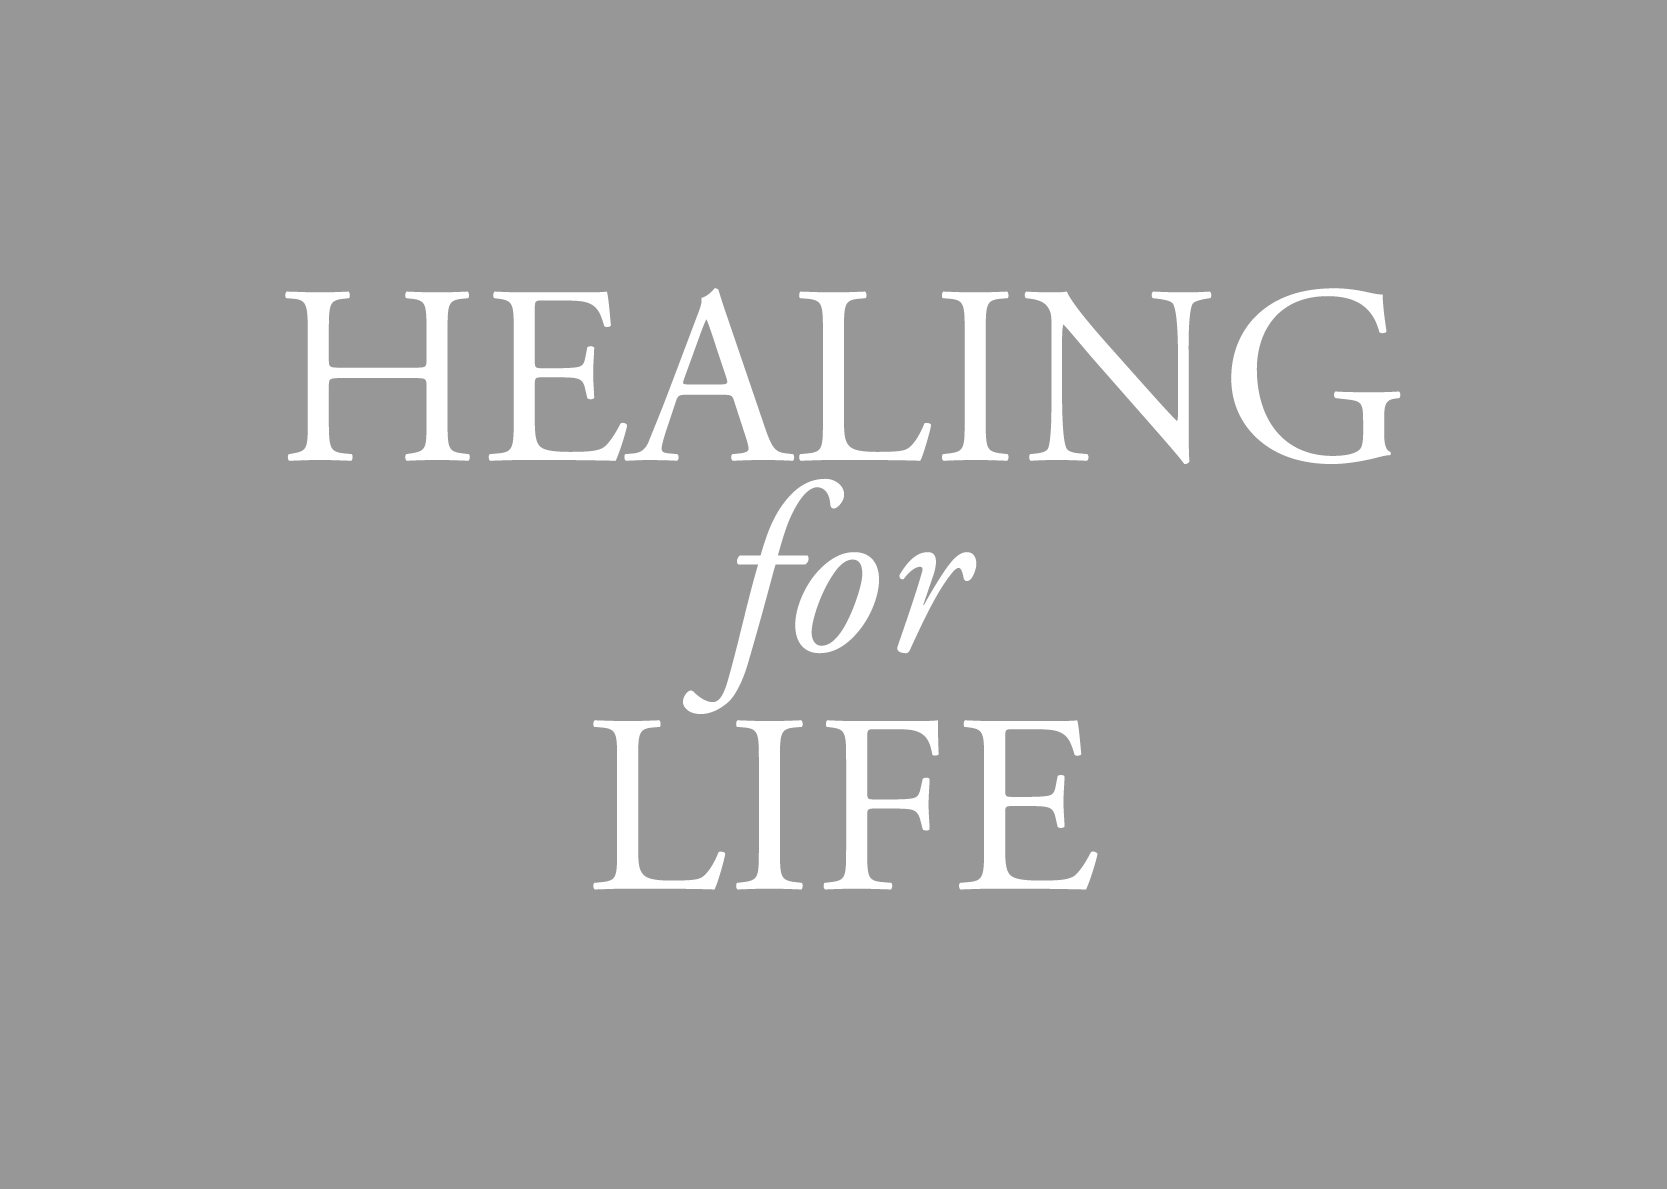 Healing for Life Publication, Graphic Design